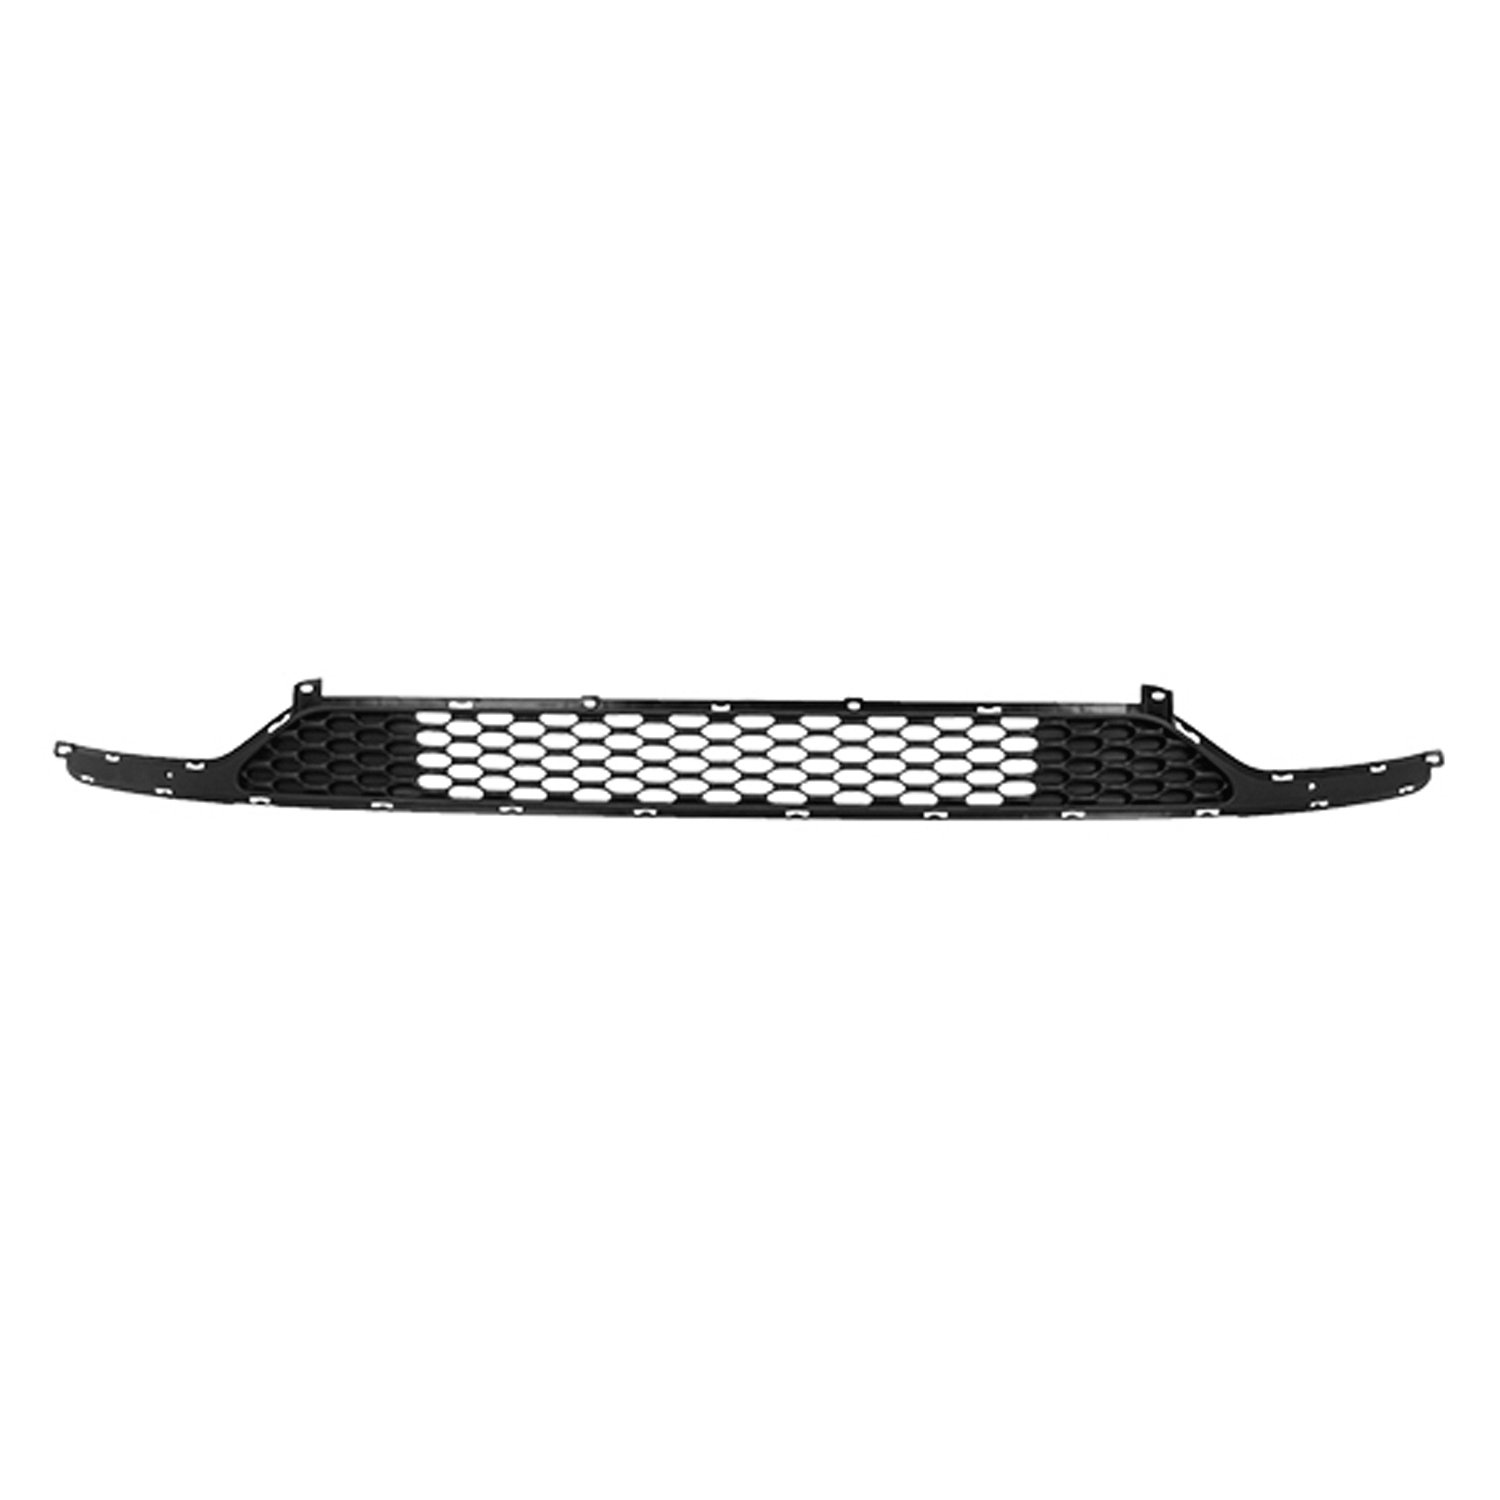 MAXMATE Fits 2014-2015 Chevy Silverado 1500 Tow Hook Covered Bolton Lower Bumper 1PC Horizontal Billet Polished Grille Grill Insert